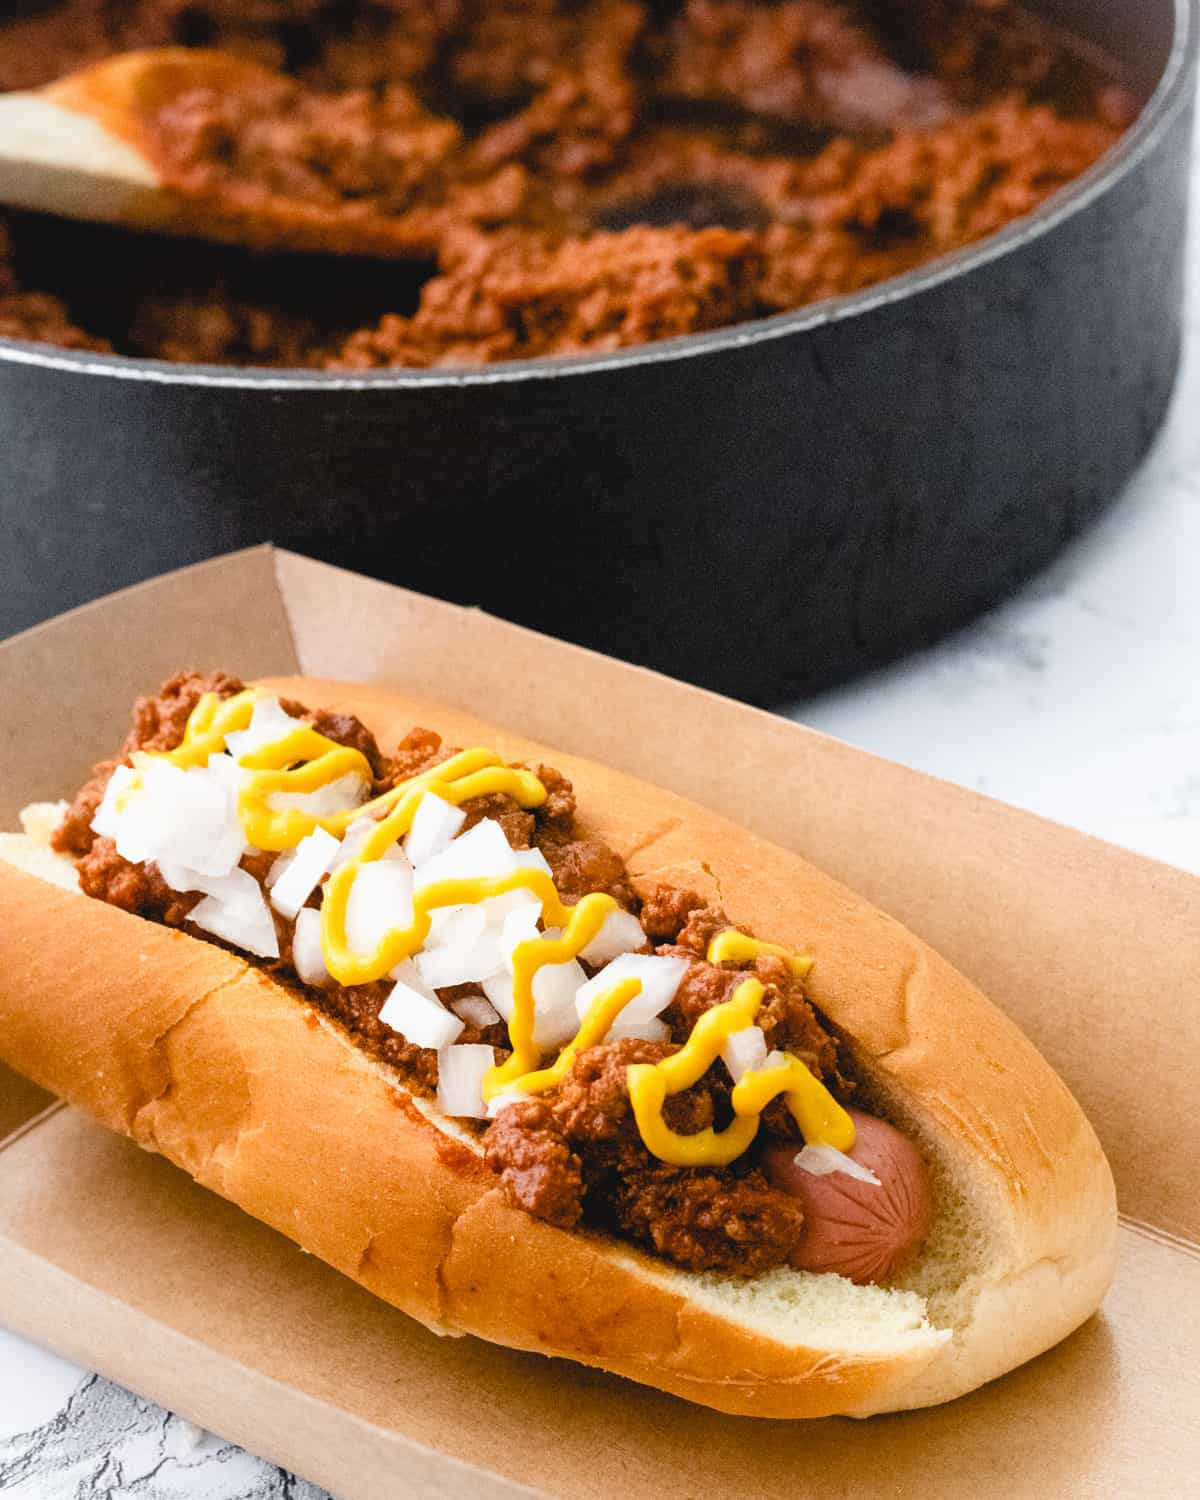 A coney dog in a cardboard holder with pan of chili sauce behind it.